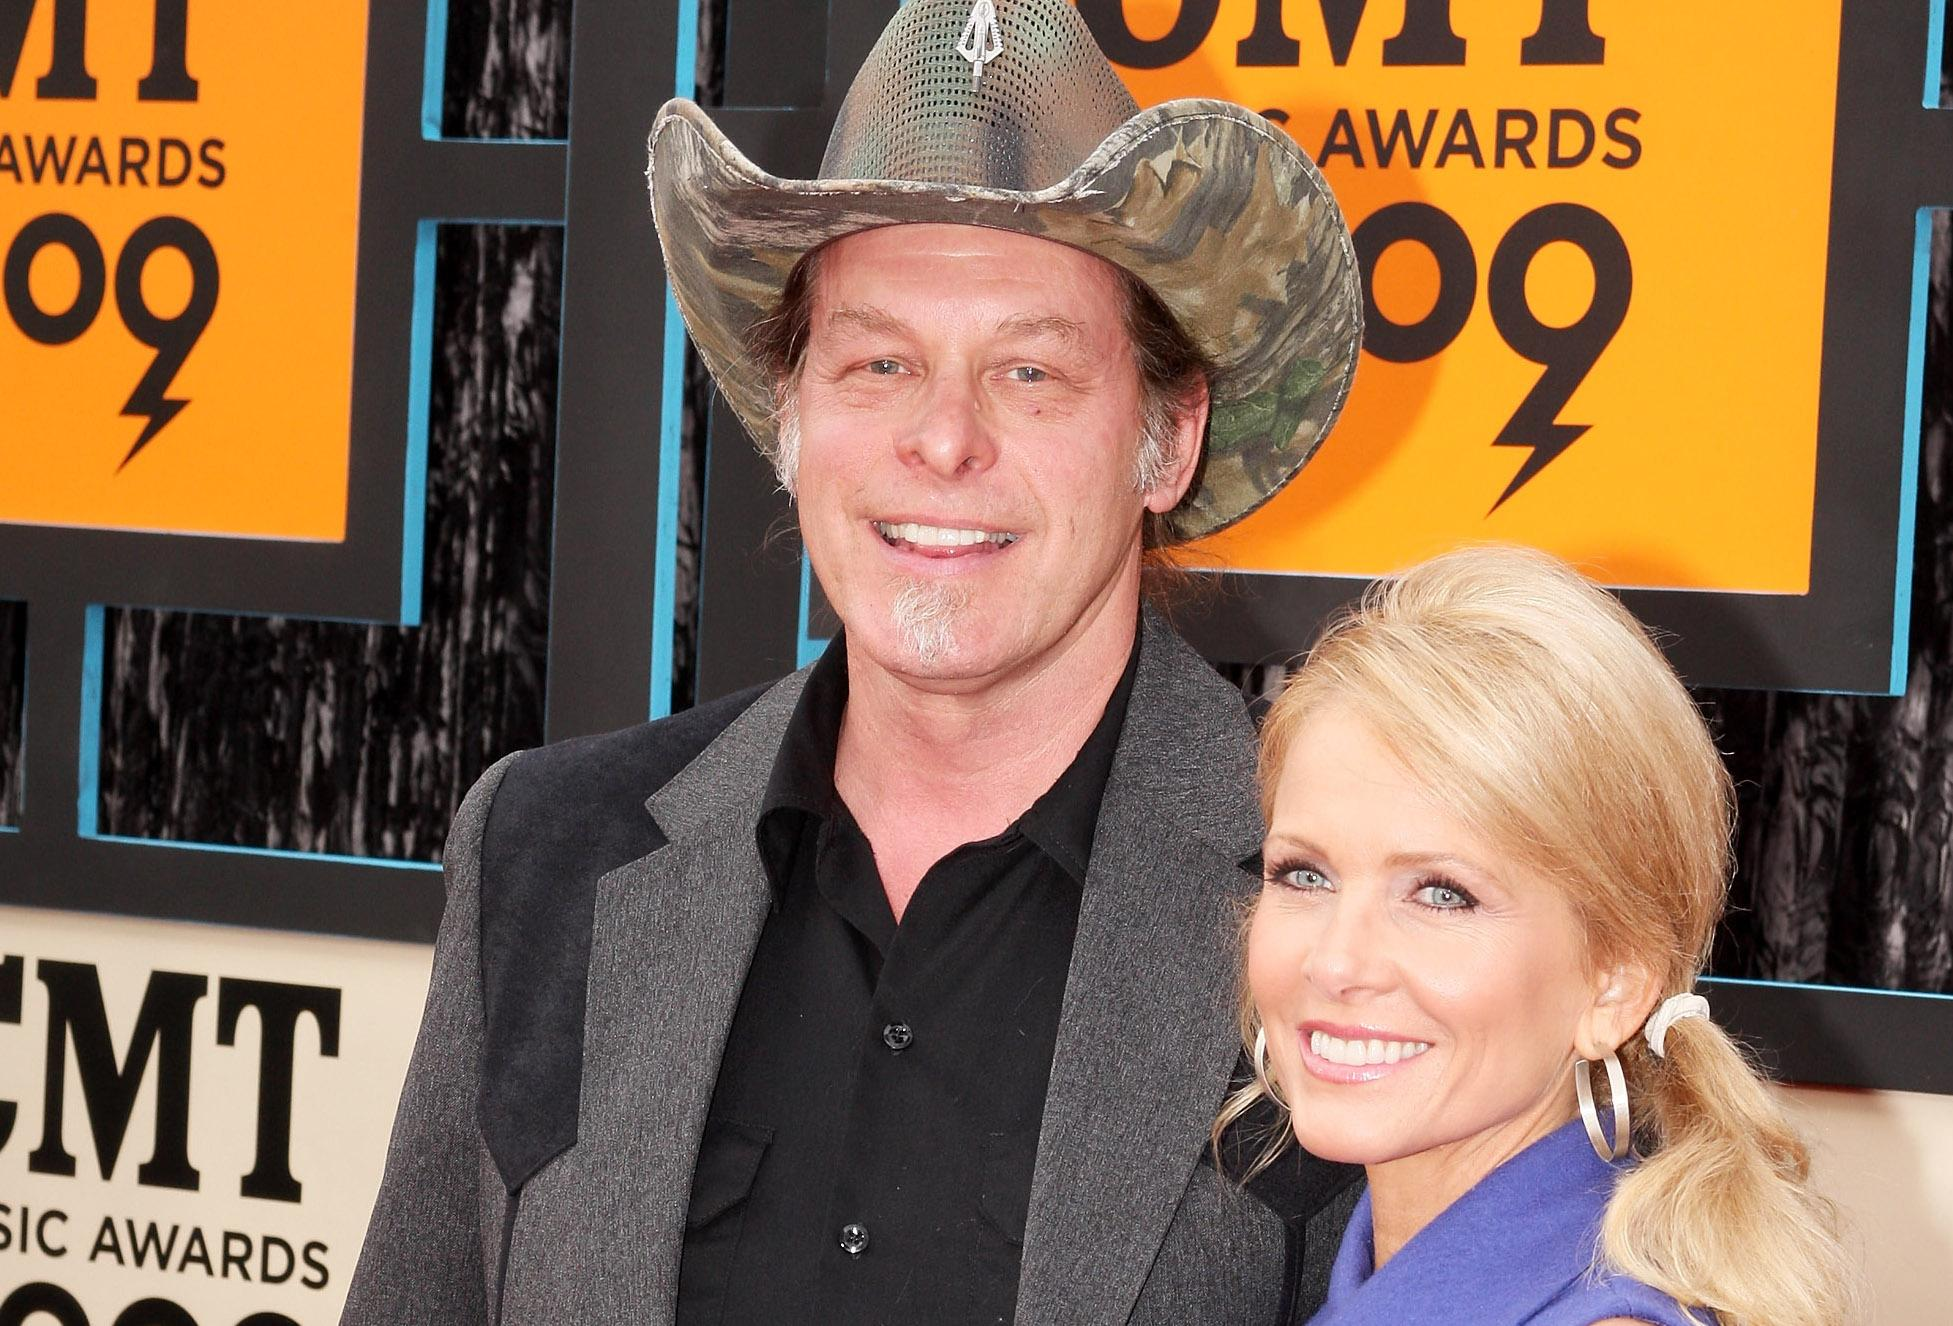 Ted Nugent and His Wife Shemaine